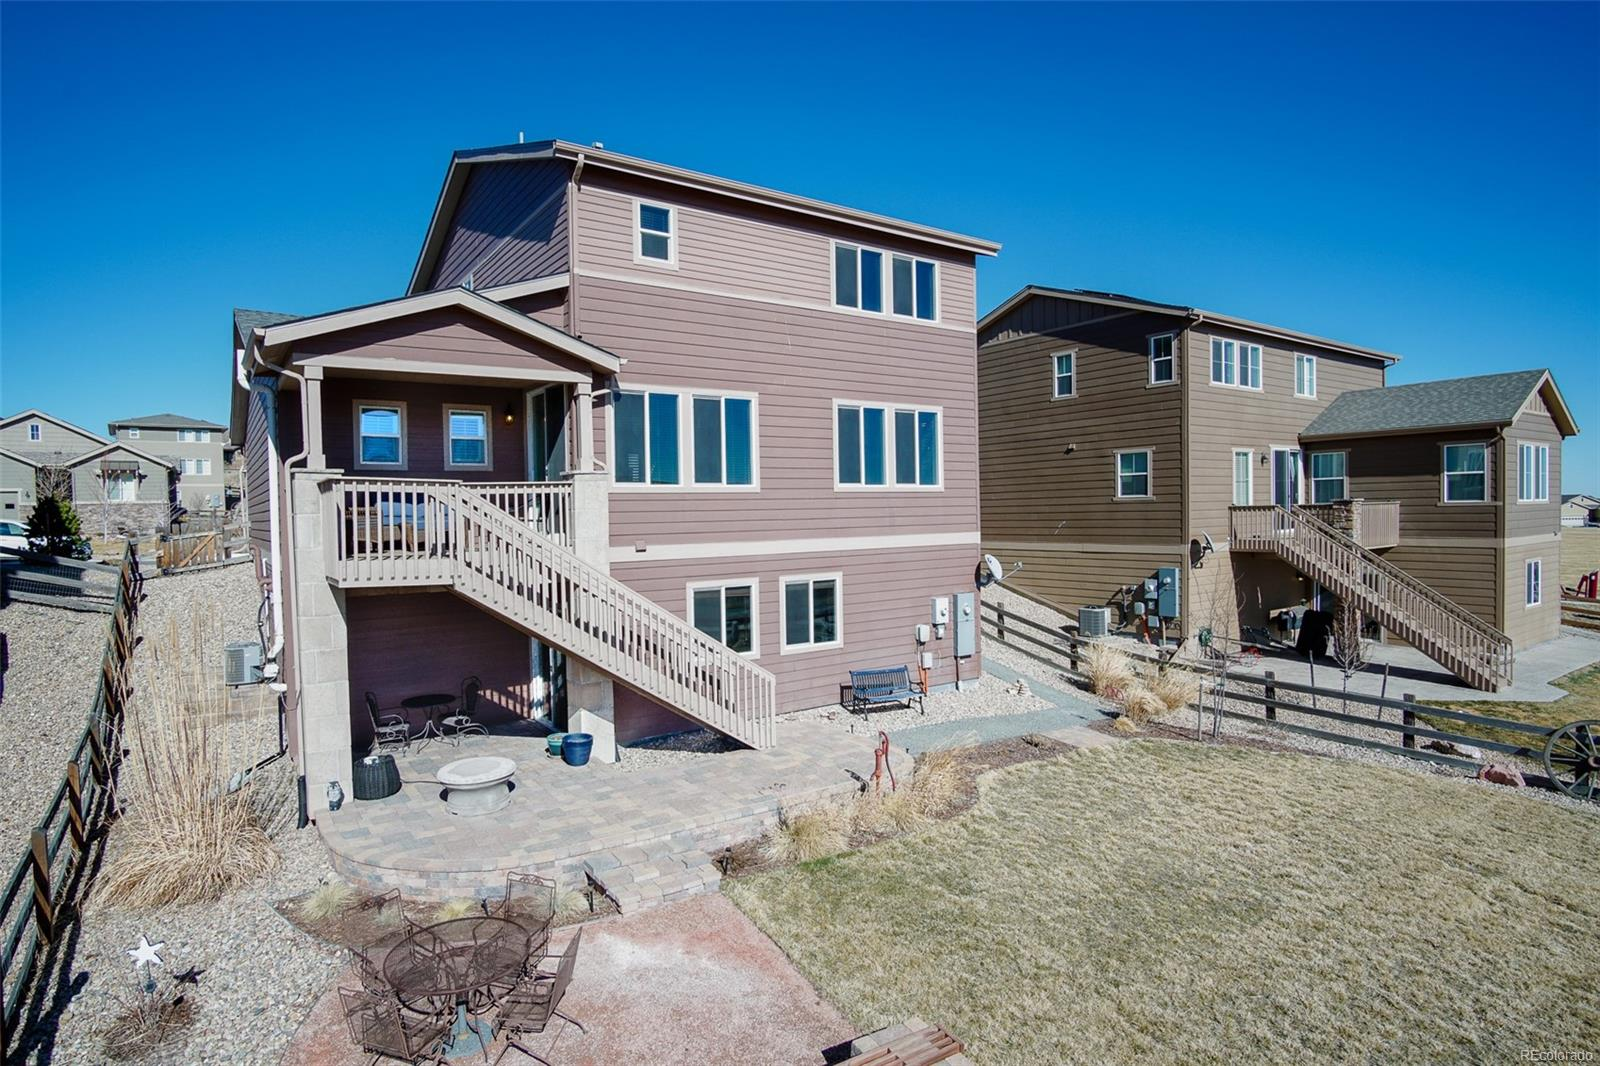 Large oversized backyard with brick patio. Perfect for grilling outside and enjo